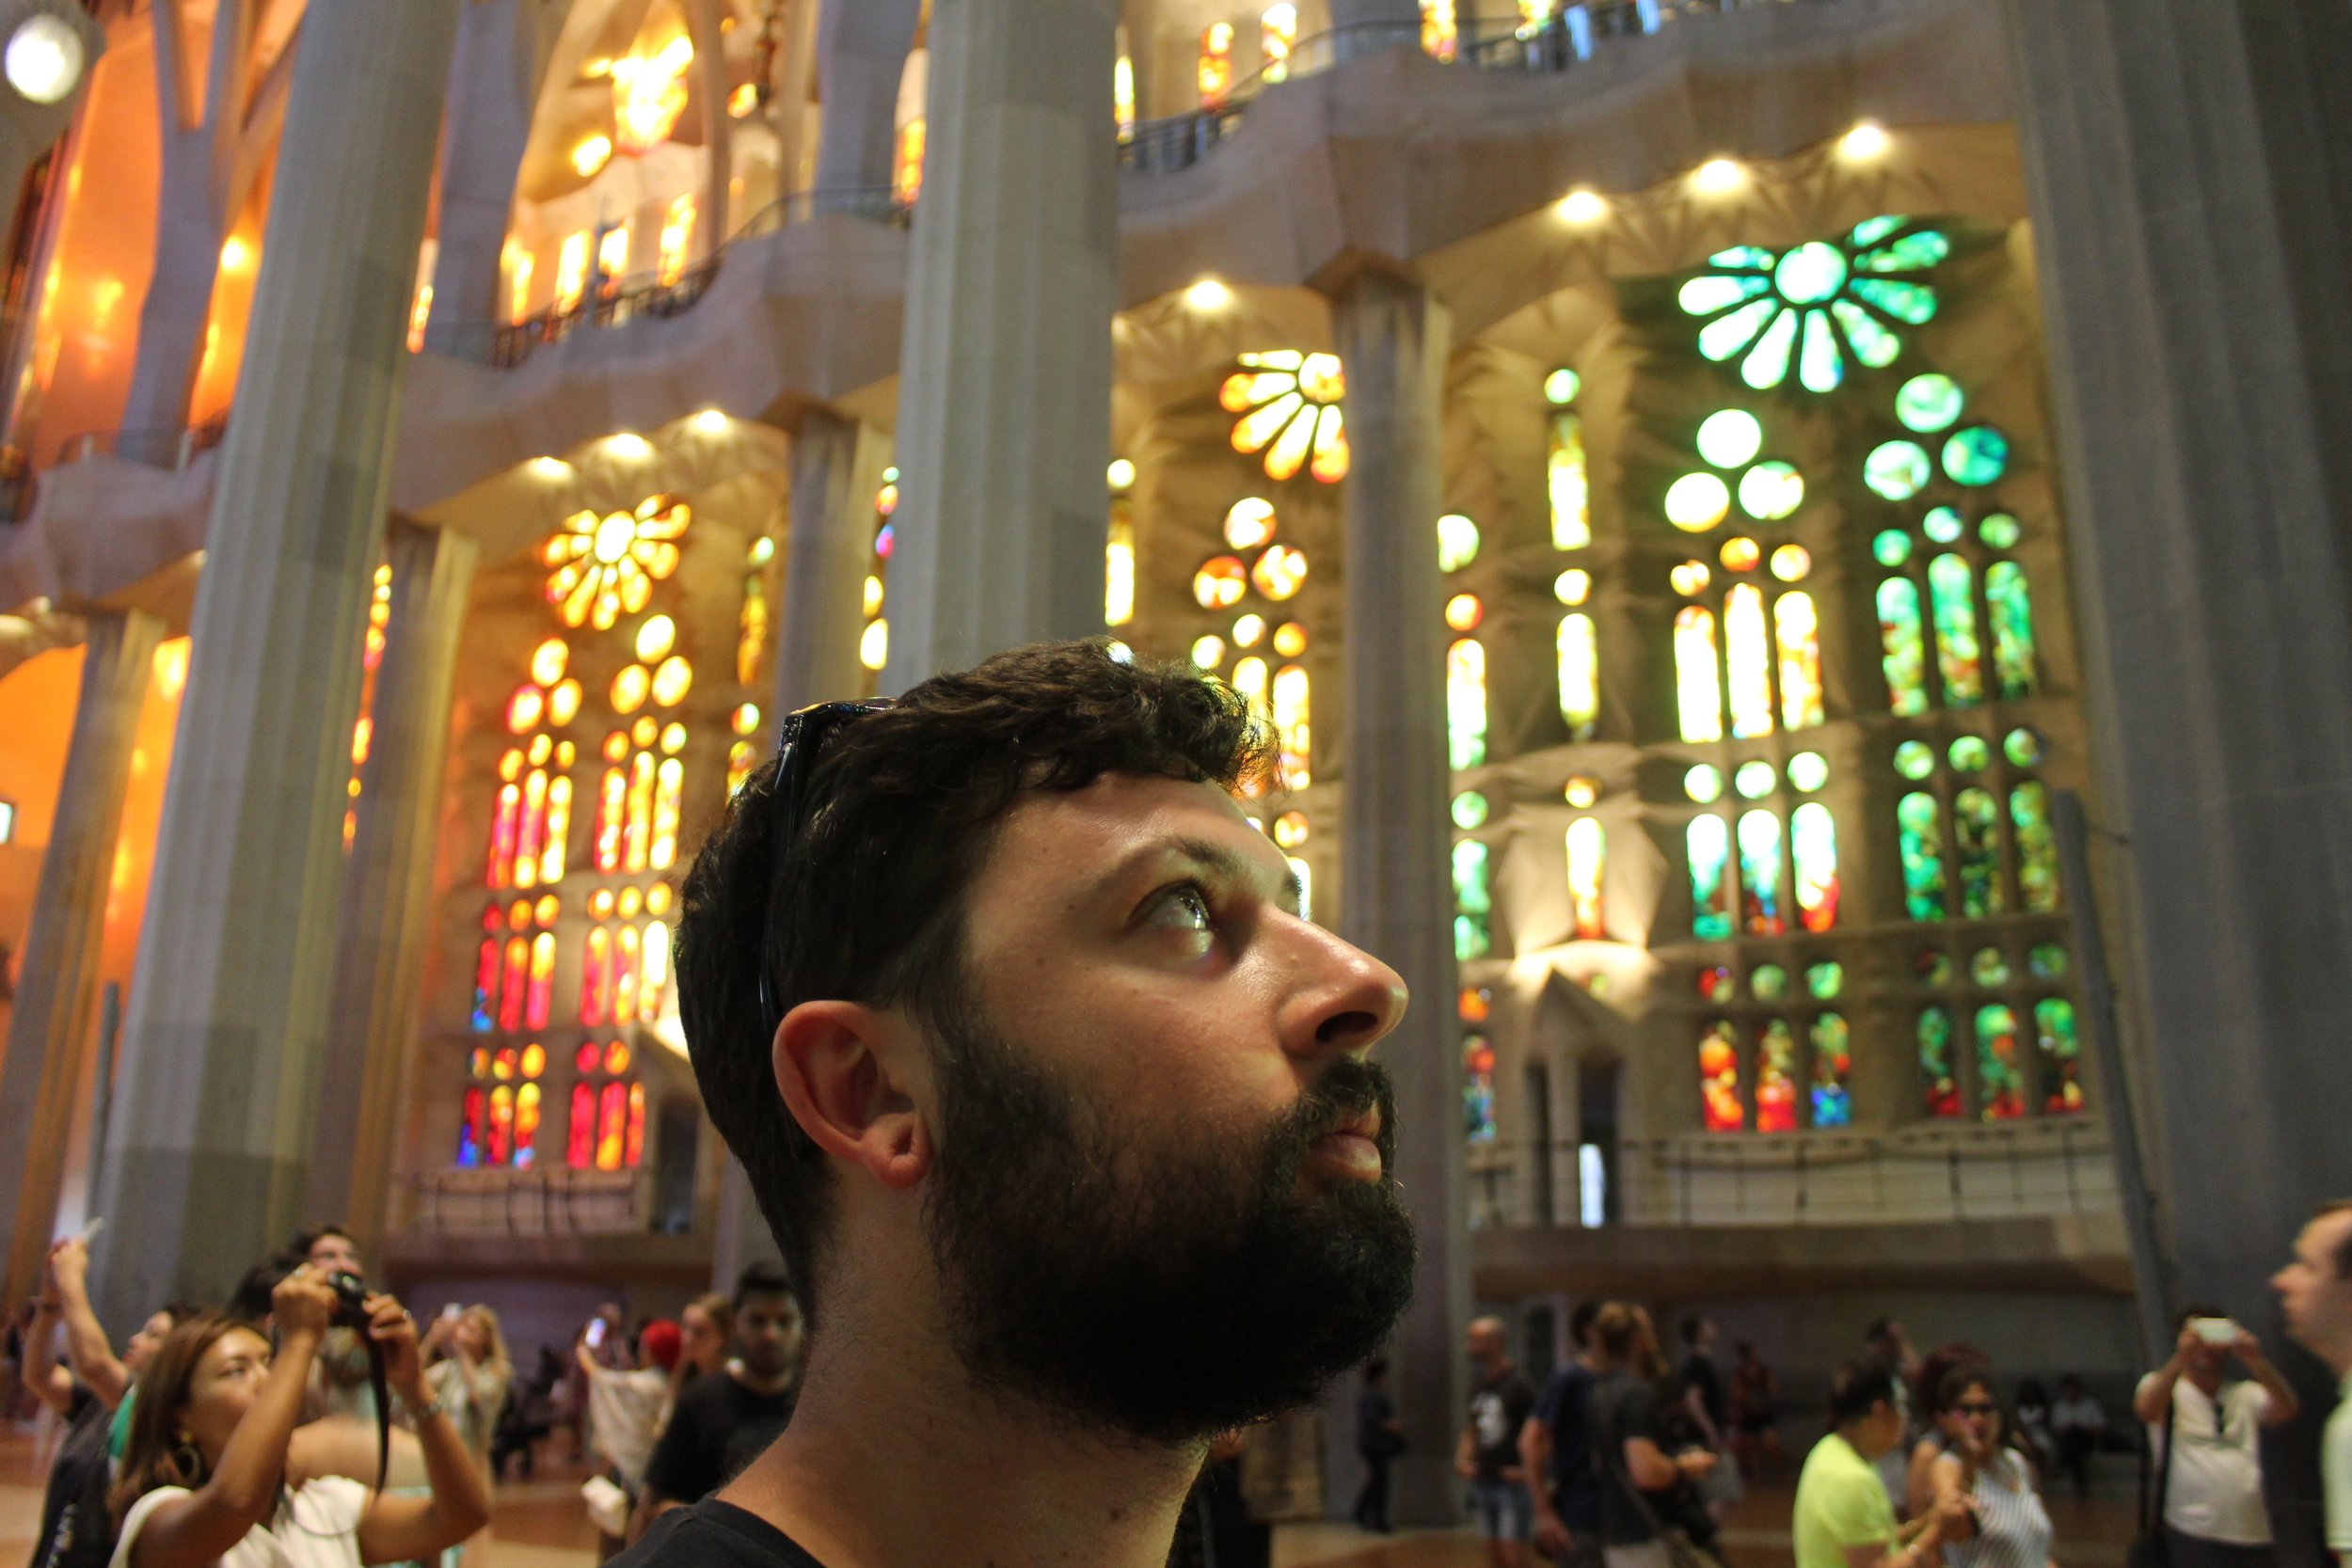 Those stained glass windows tho